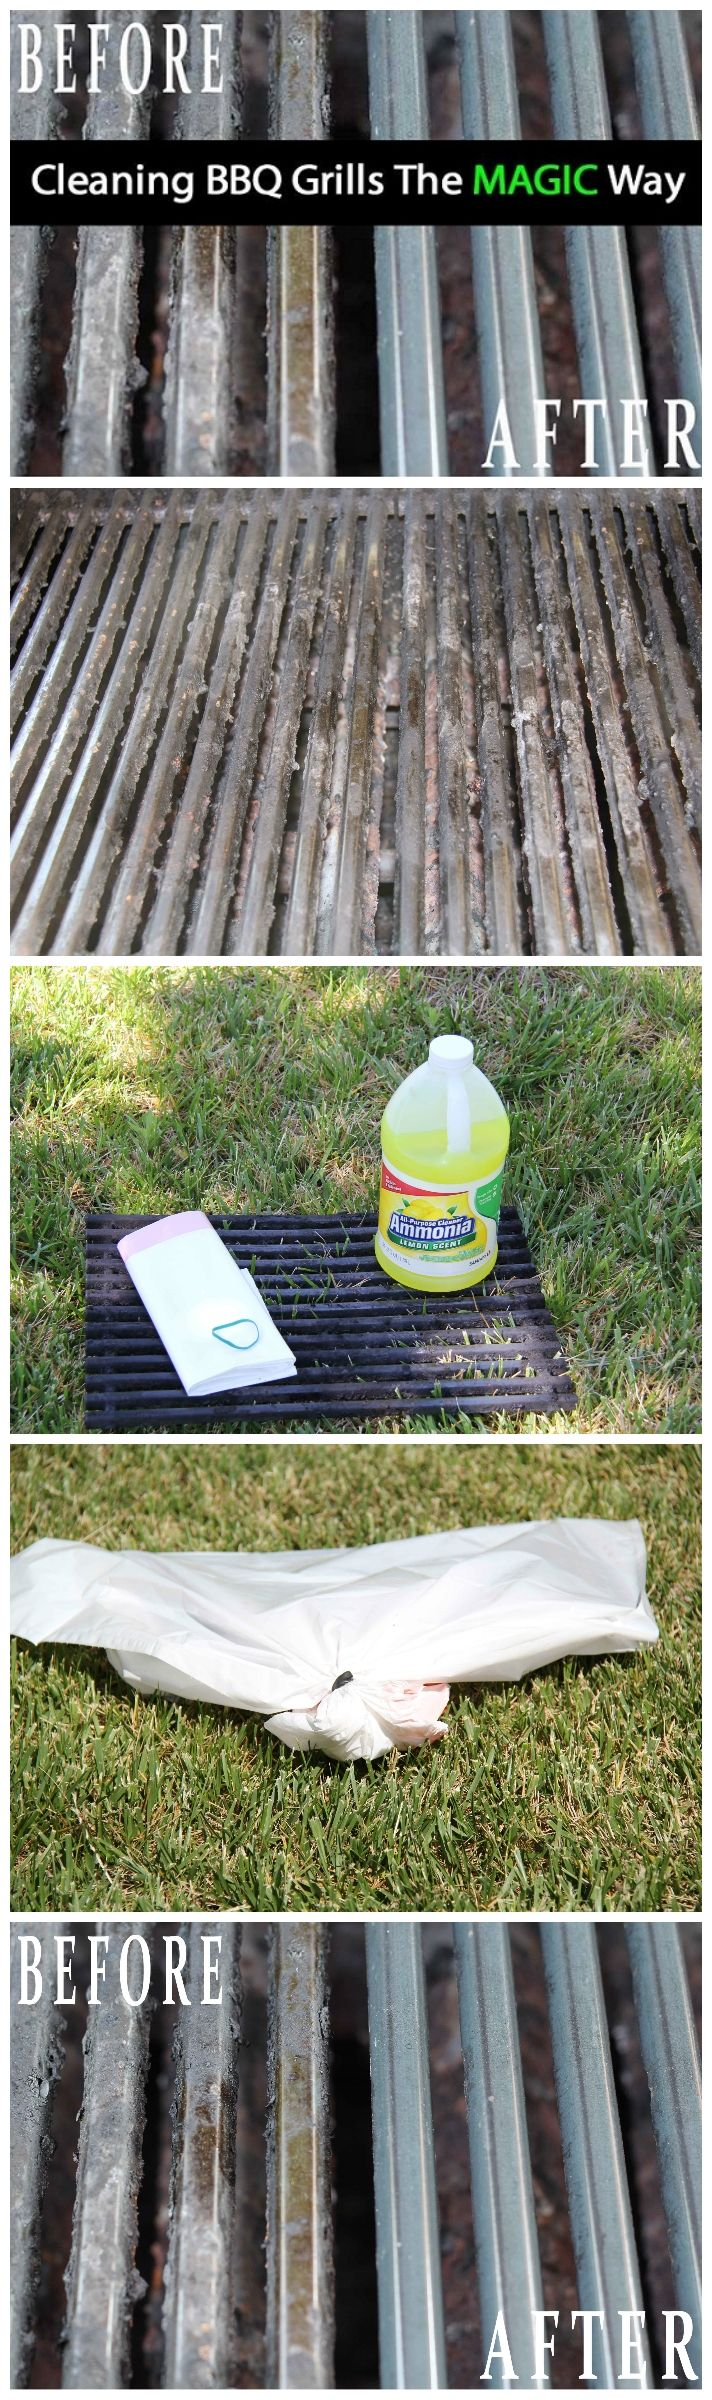 The Magic Way To Clean The BBQ